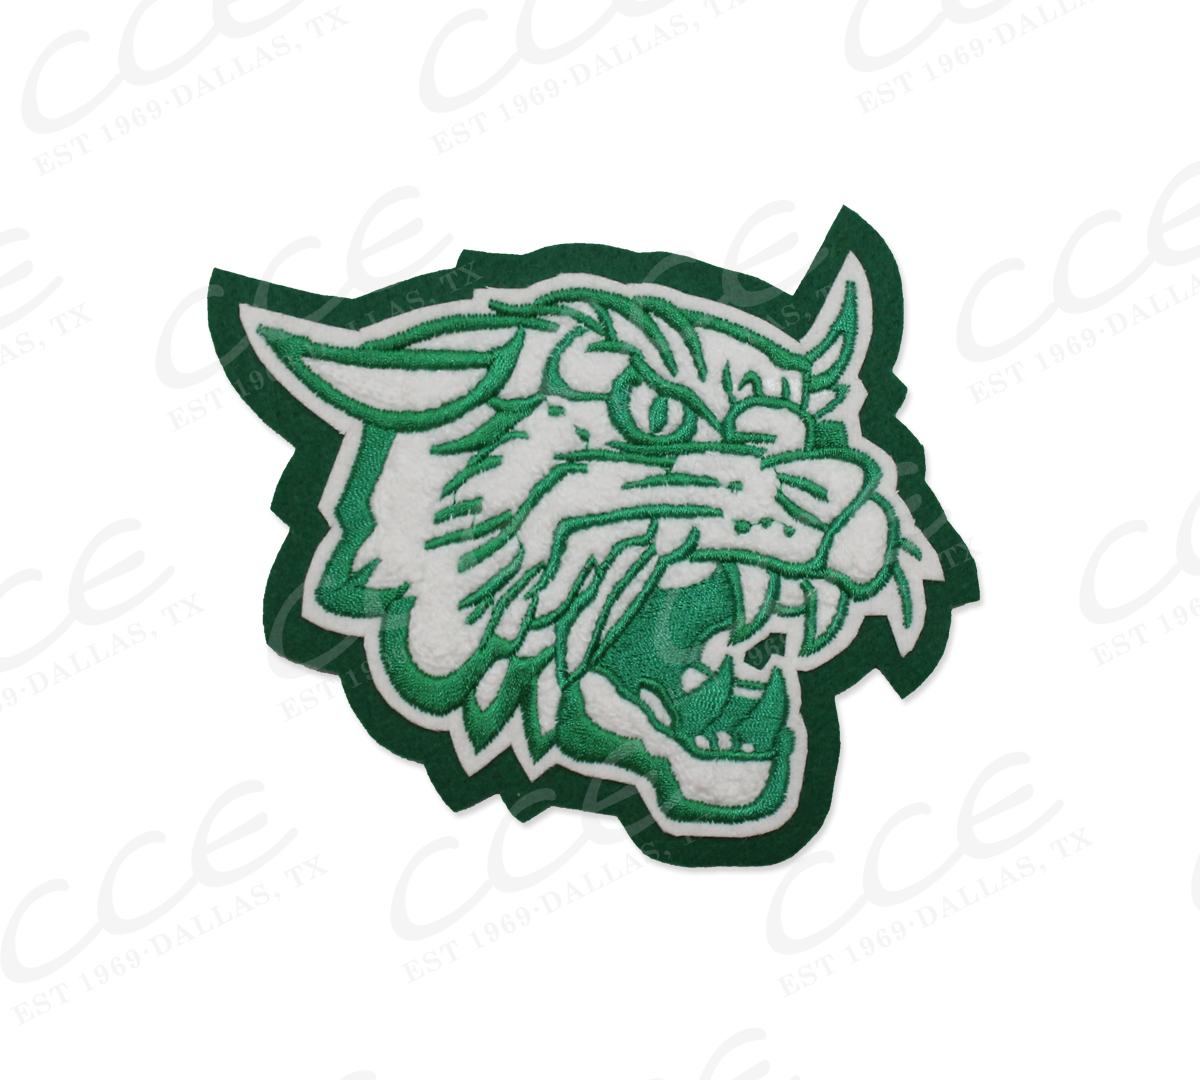 jpg stock Kennedale hs wildcats sleeve. Wildcat clipart green